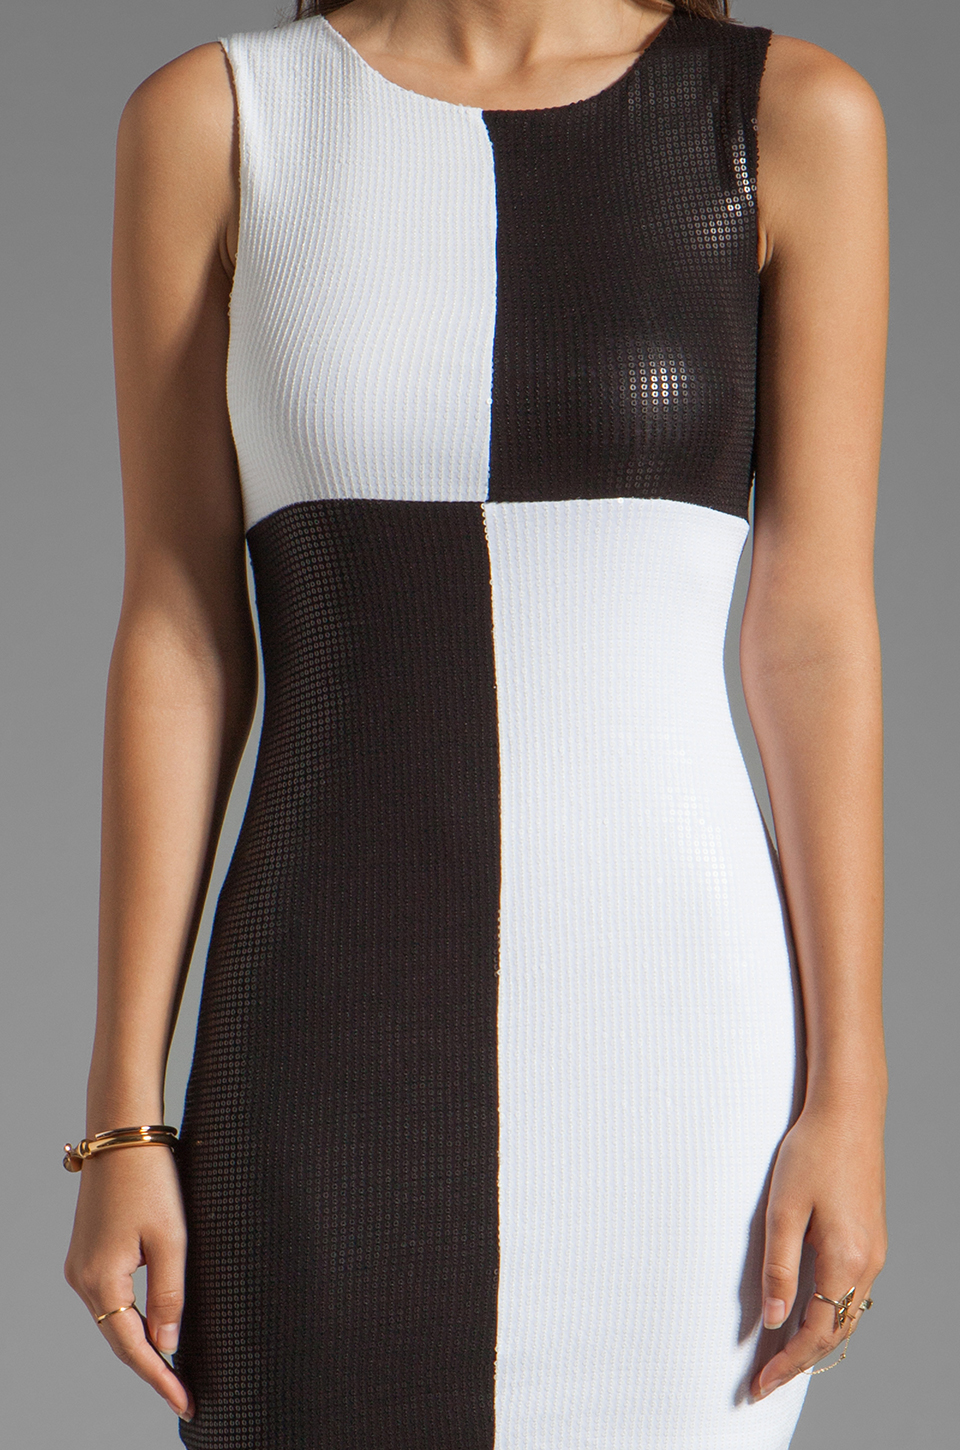 Bailey 44 Dig Out Dress in Black/White